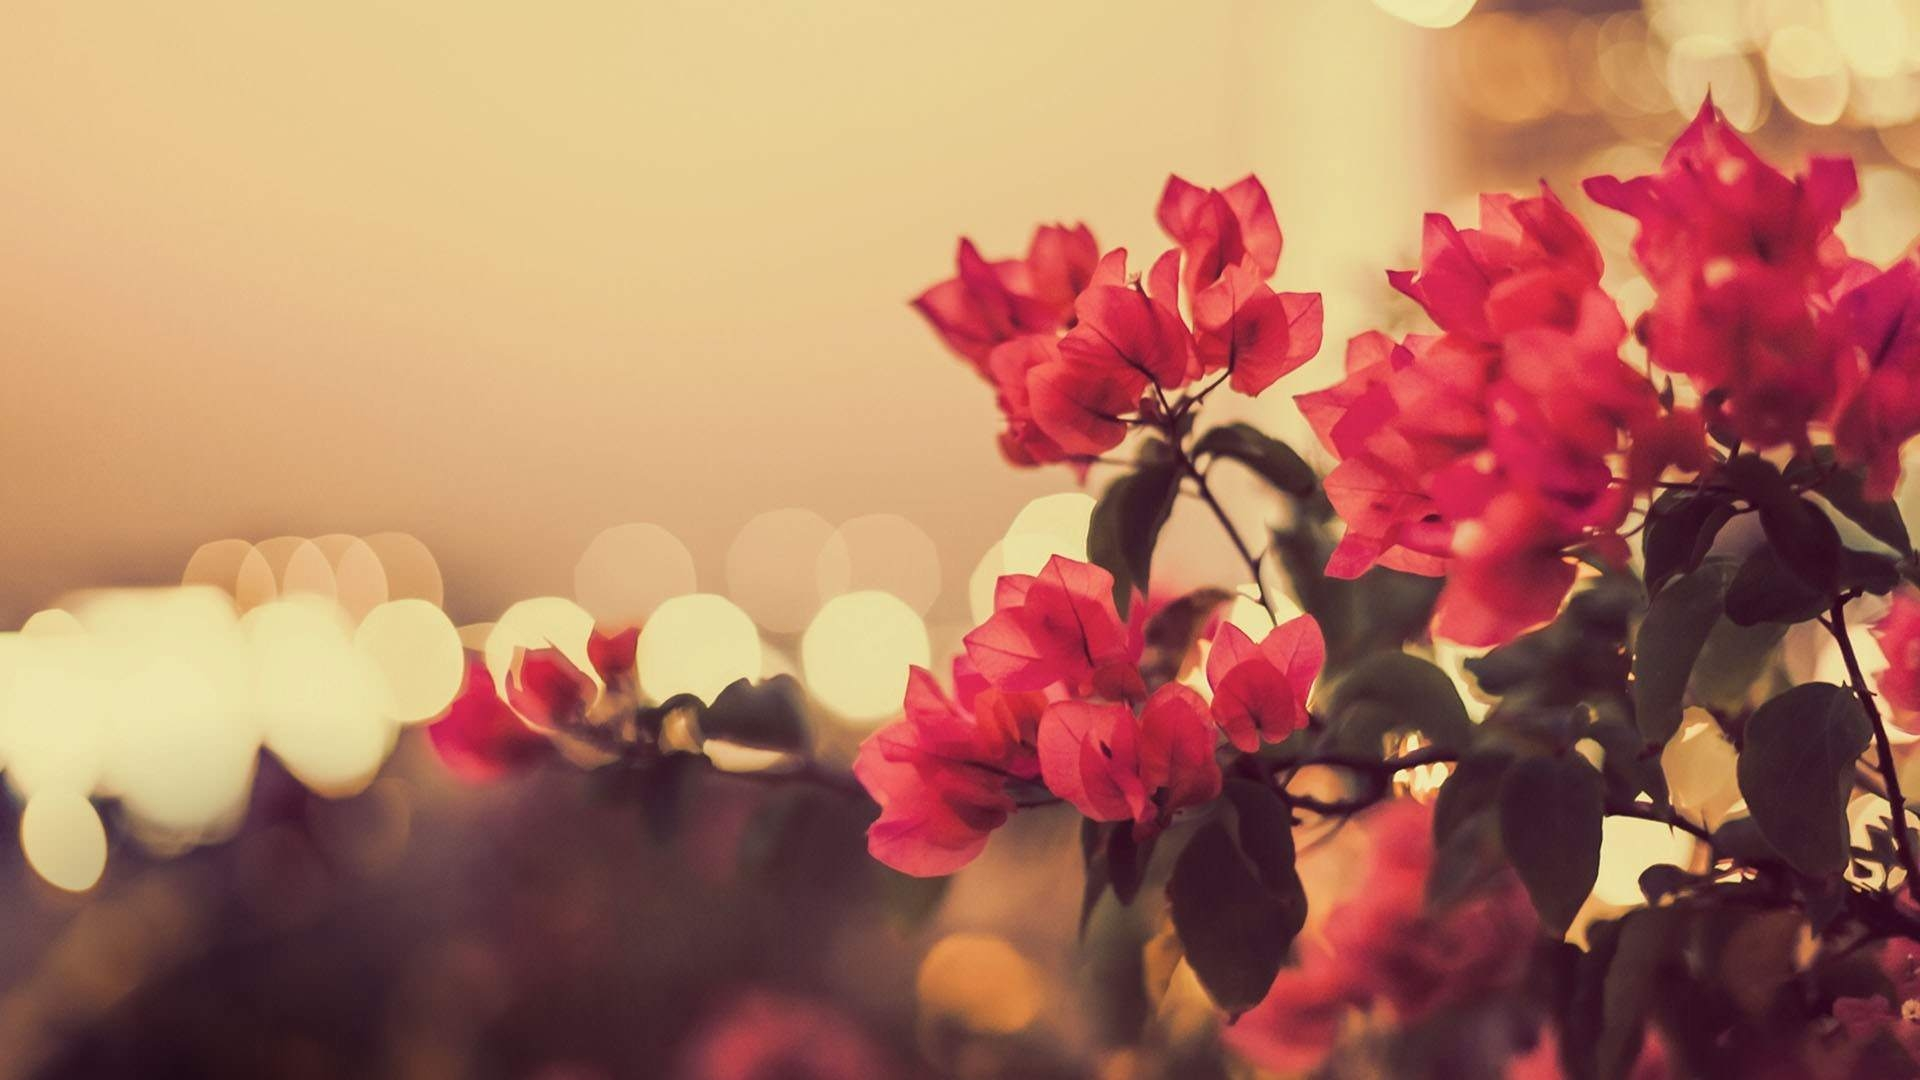 photography-flowers-bokeh-lights-photo-vintage-hd-wallpaper